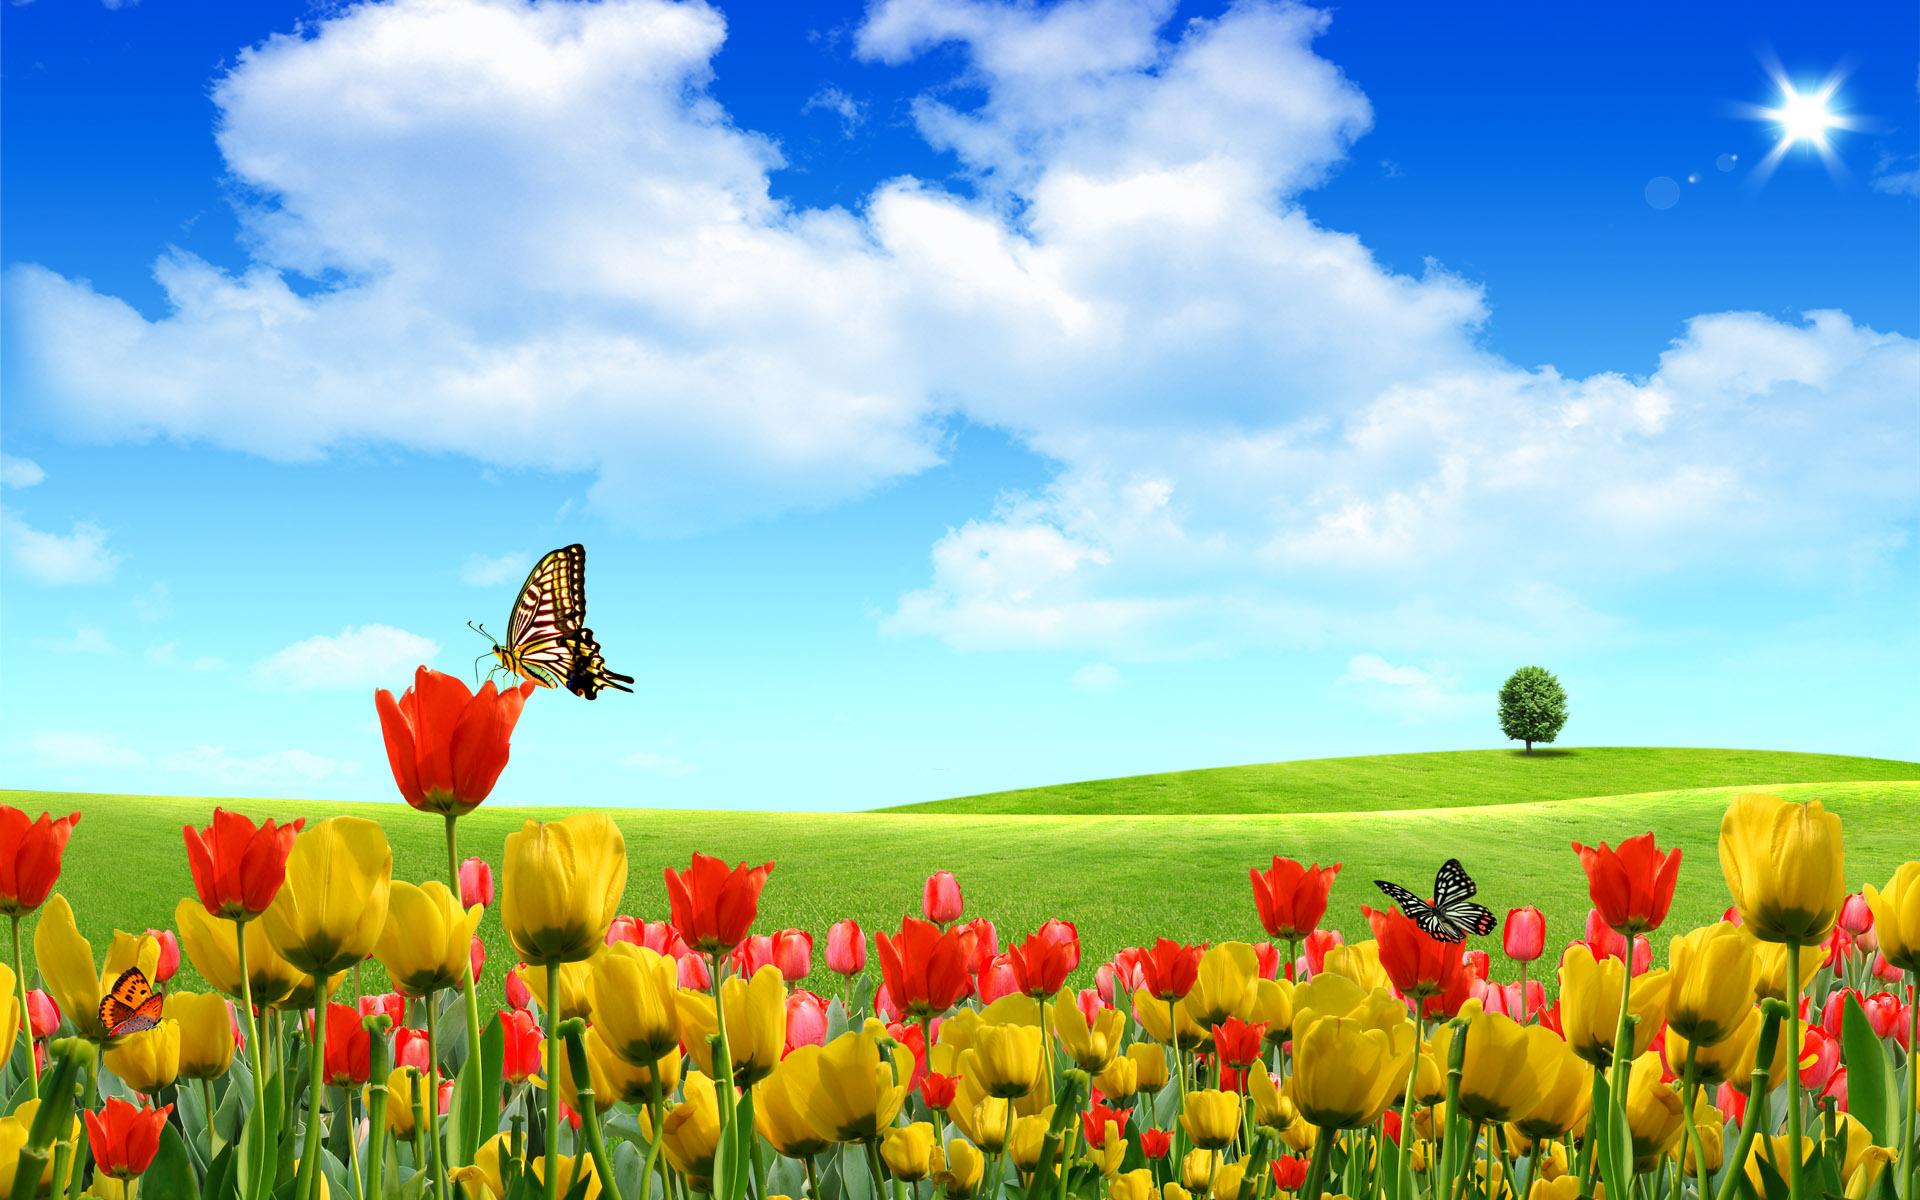 Free Scenery Wallpaper – Includes Beautiful Buds, Boasting of Its ...